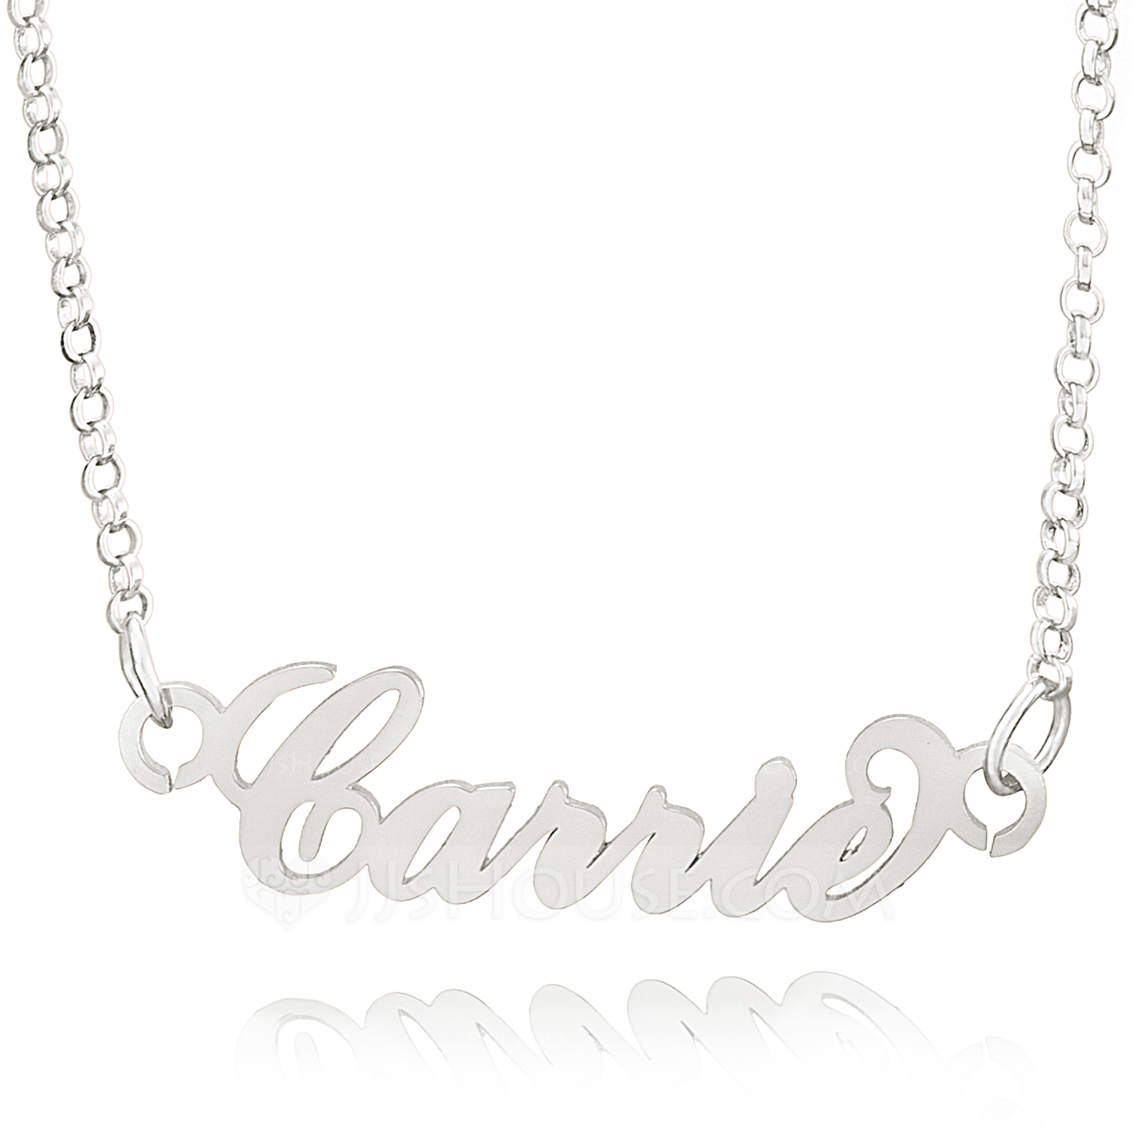 Custom Sterling Silver Plate Carrie Name Necklace - Birthday Gifts Mother's Day Gifts